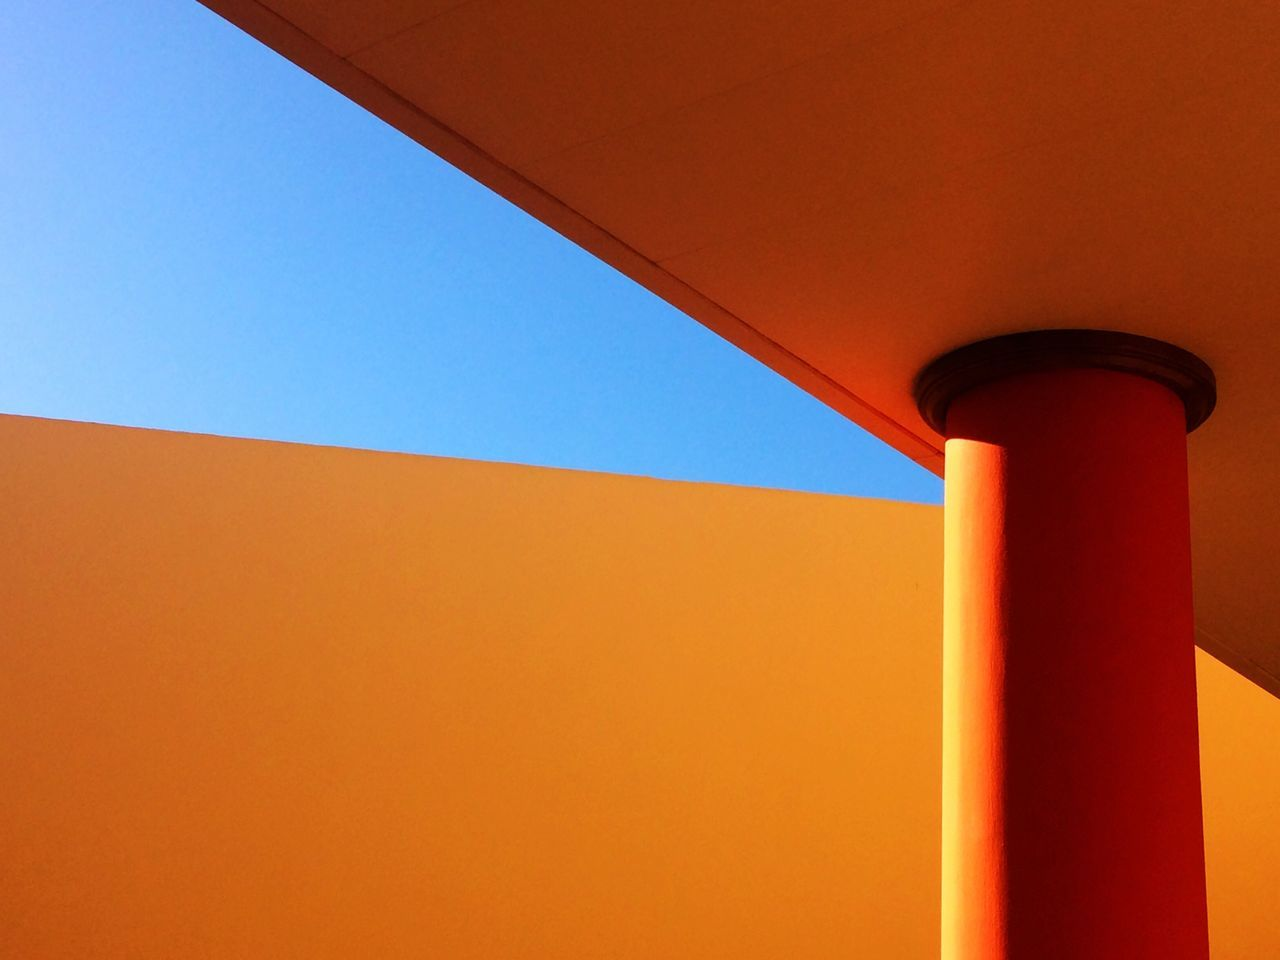 LOW ANGLE VIEW OF ORANGE BUILT STRUCTURE AGAINST CLEAR SKY